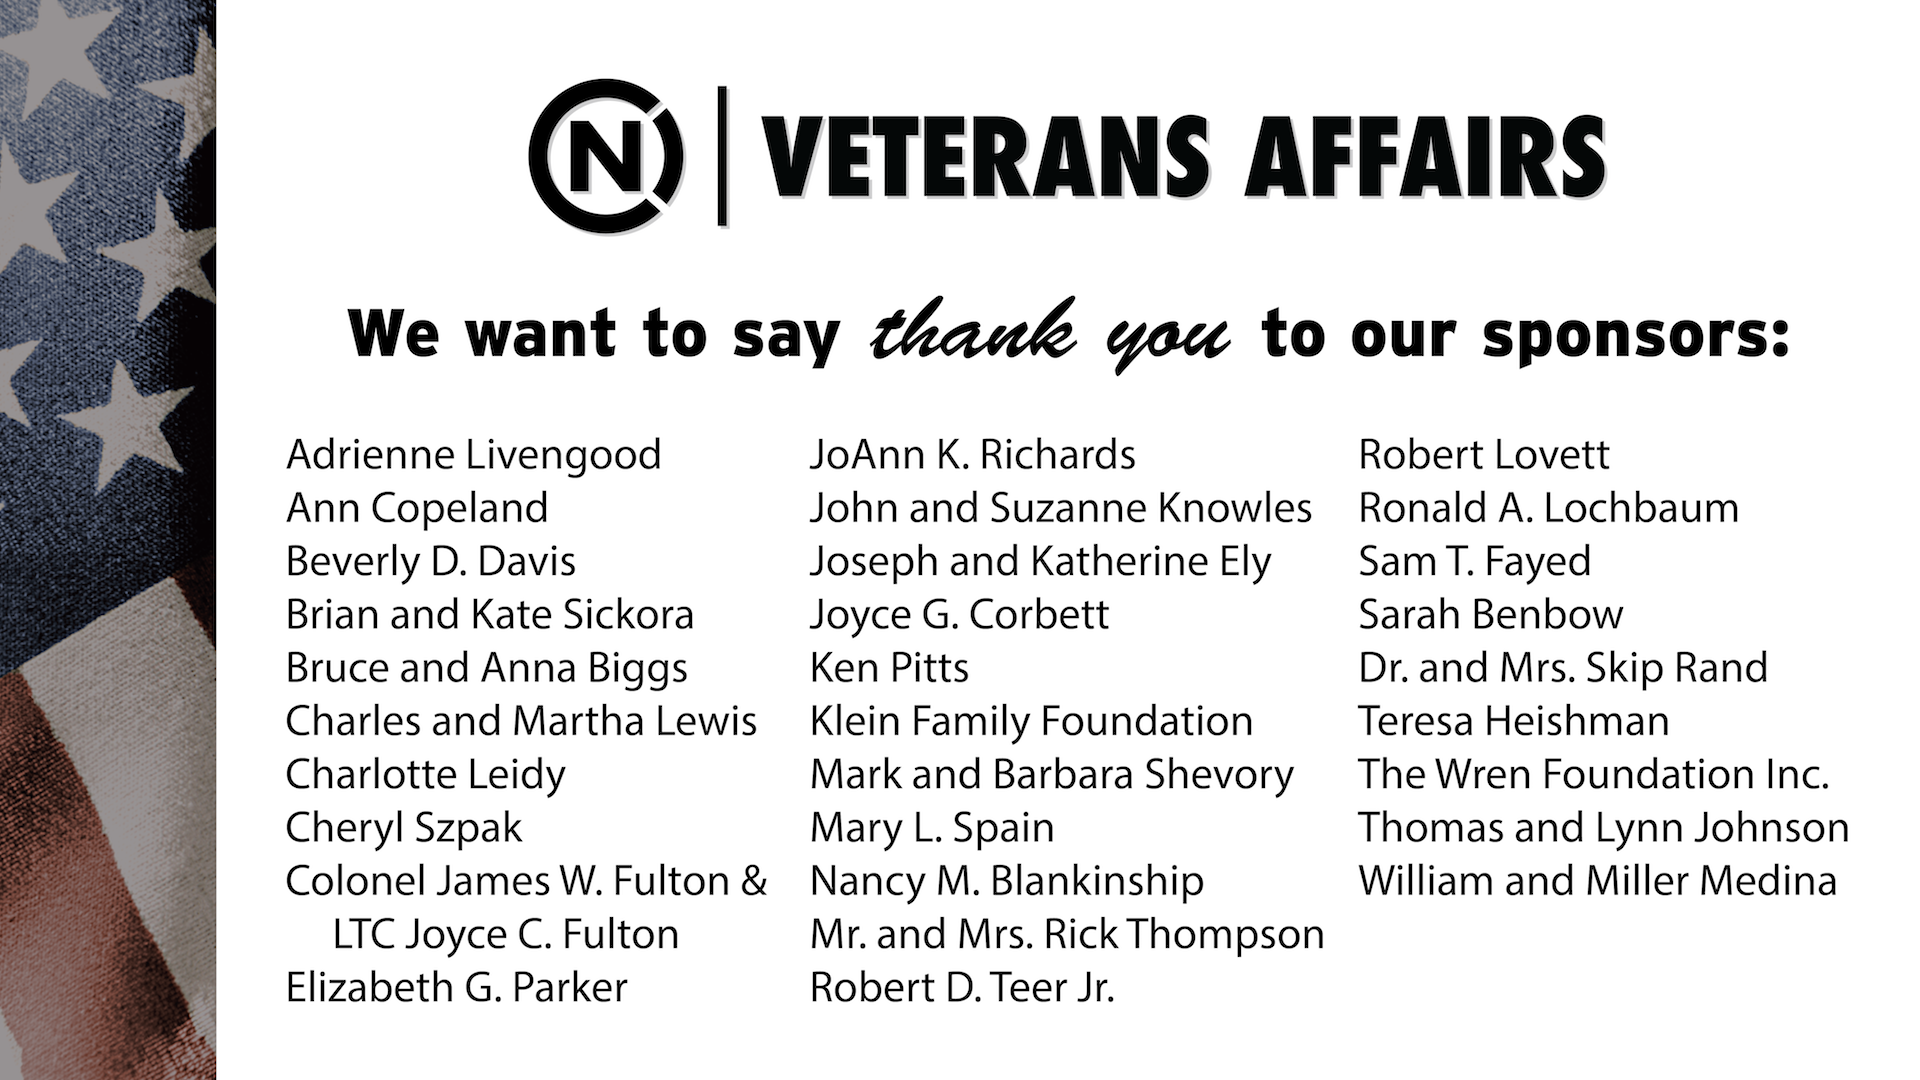 Thank you to our sponsors list.